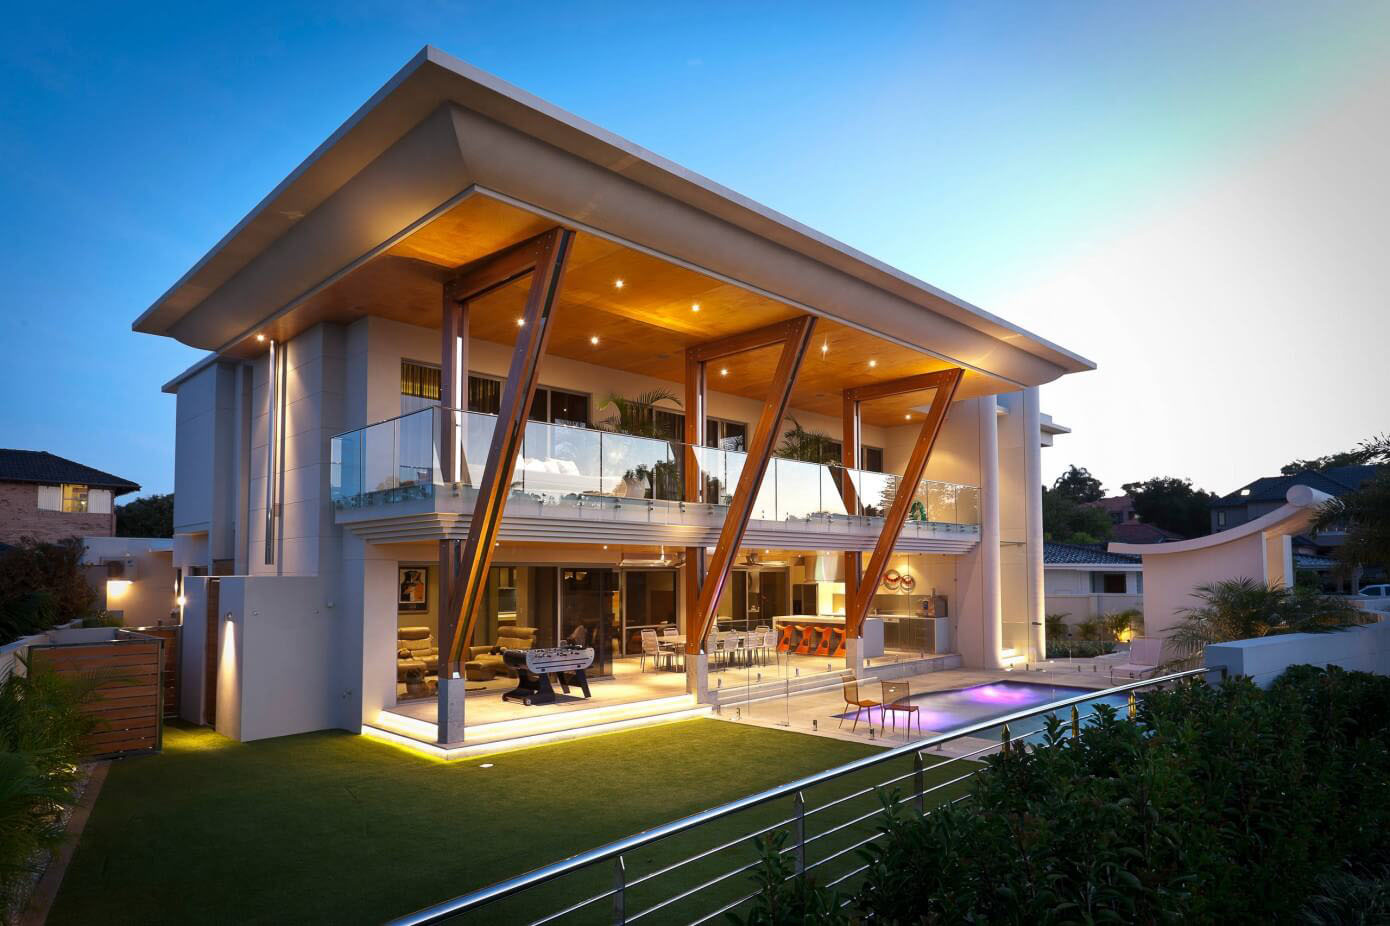 Ultra modern home in perth with large roof idesignarch for Luxury homes architecture design